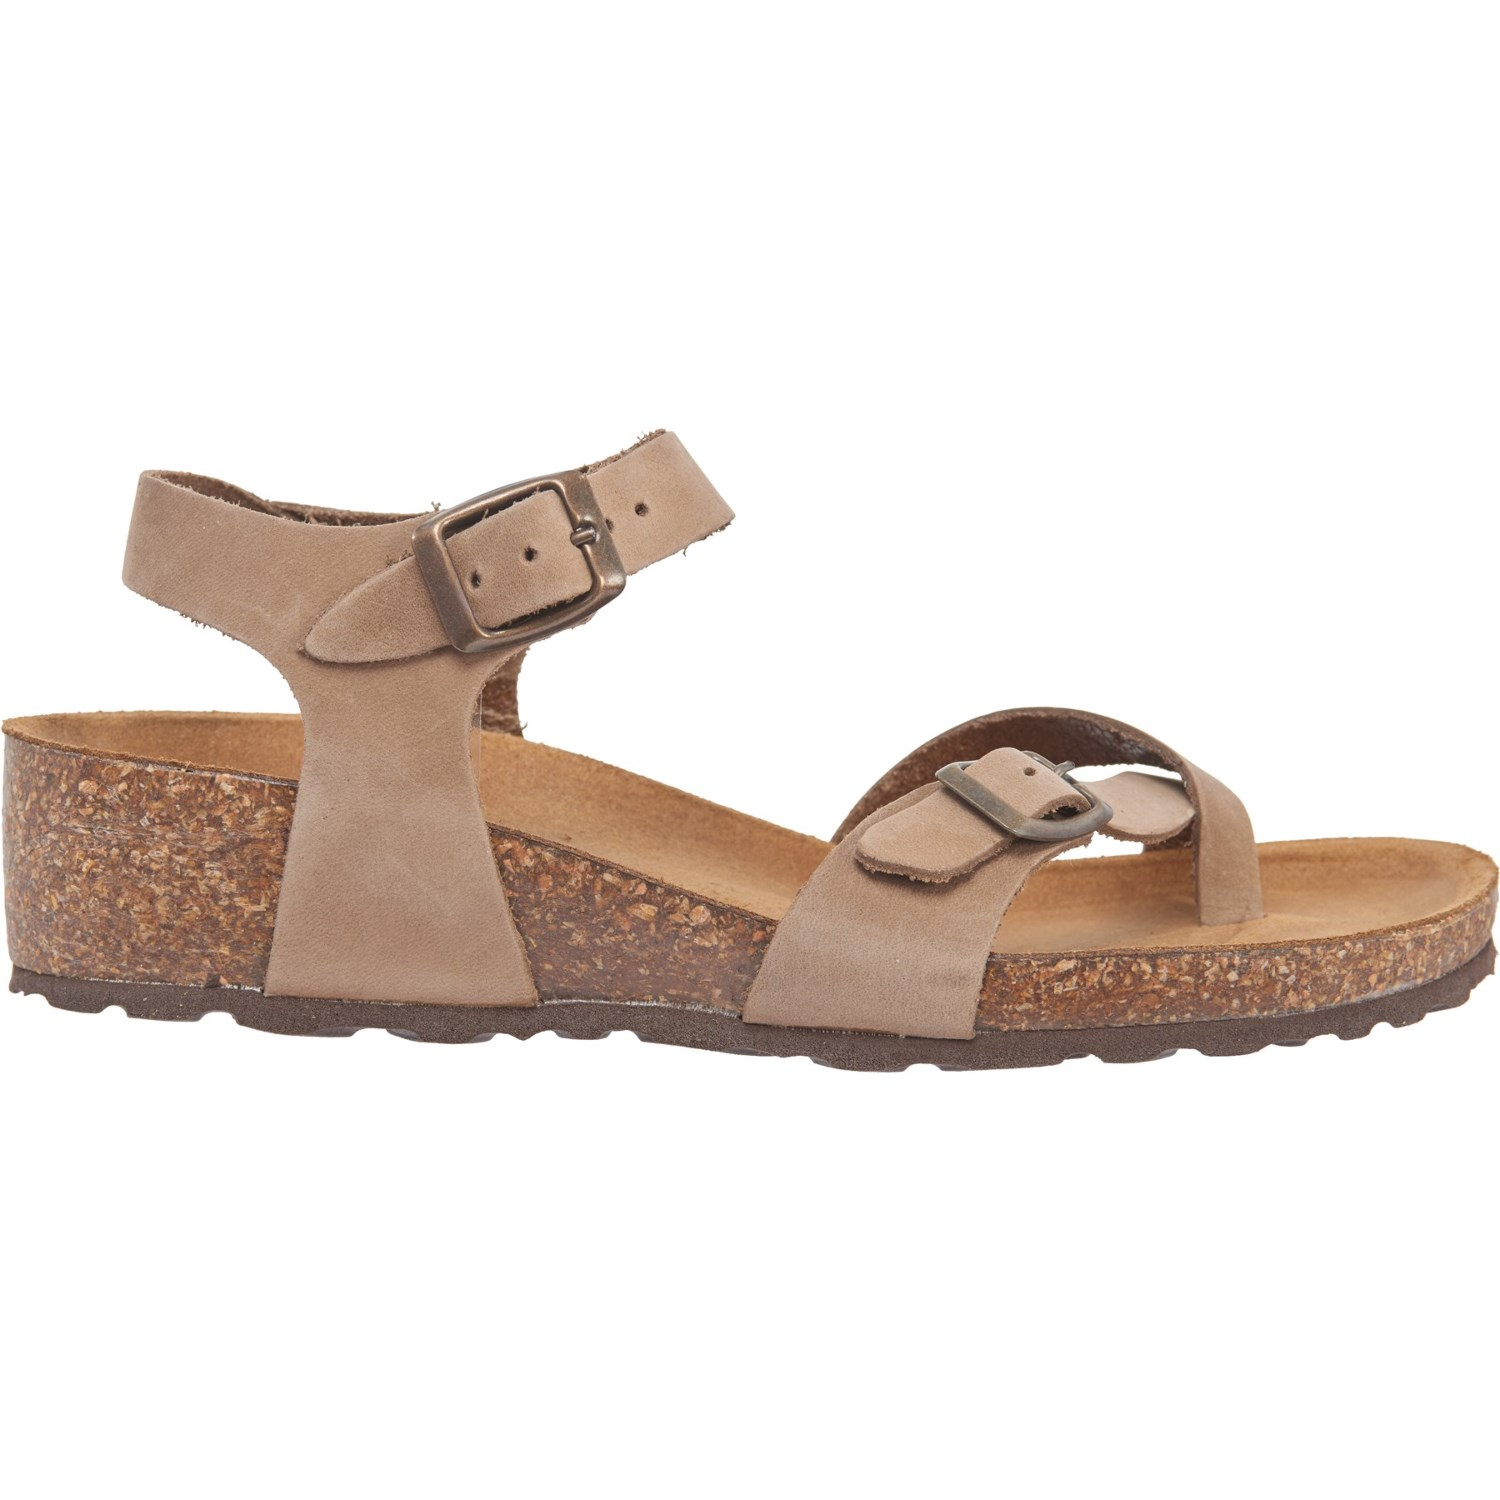 ec86f2b66f40 A. GIANNETTI Made in Italy Buckle Strap Sandals (For Women) - Save 40%